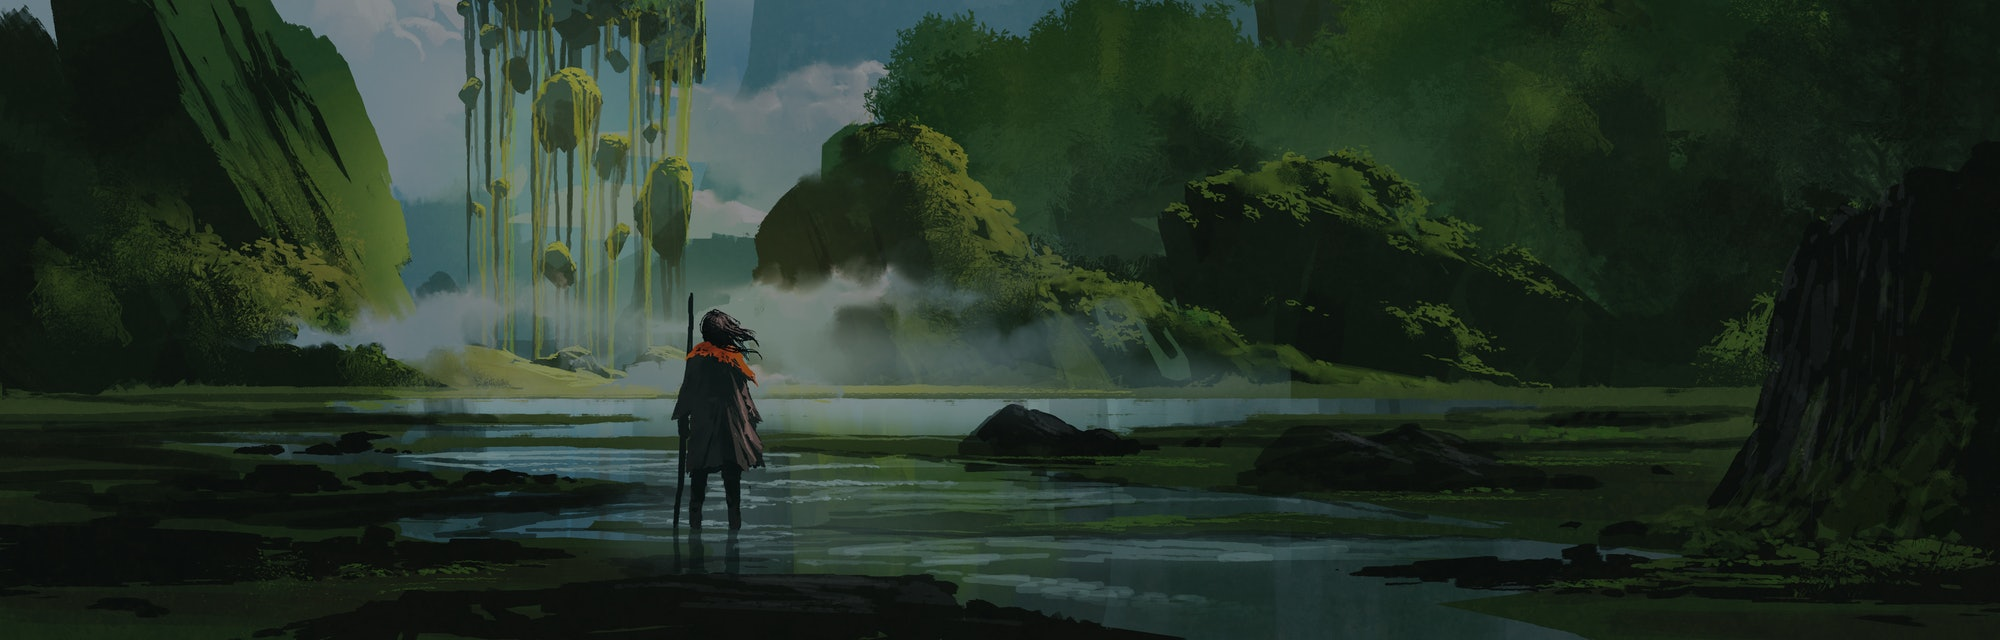 woman standing on creek looking at the mystery rock floating in midair, digital art style, illustrat...